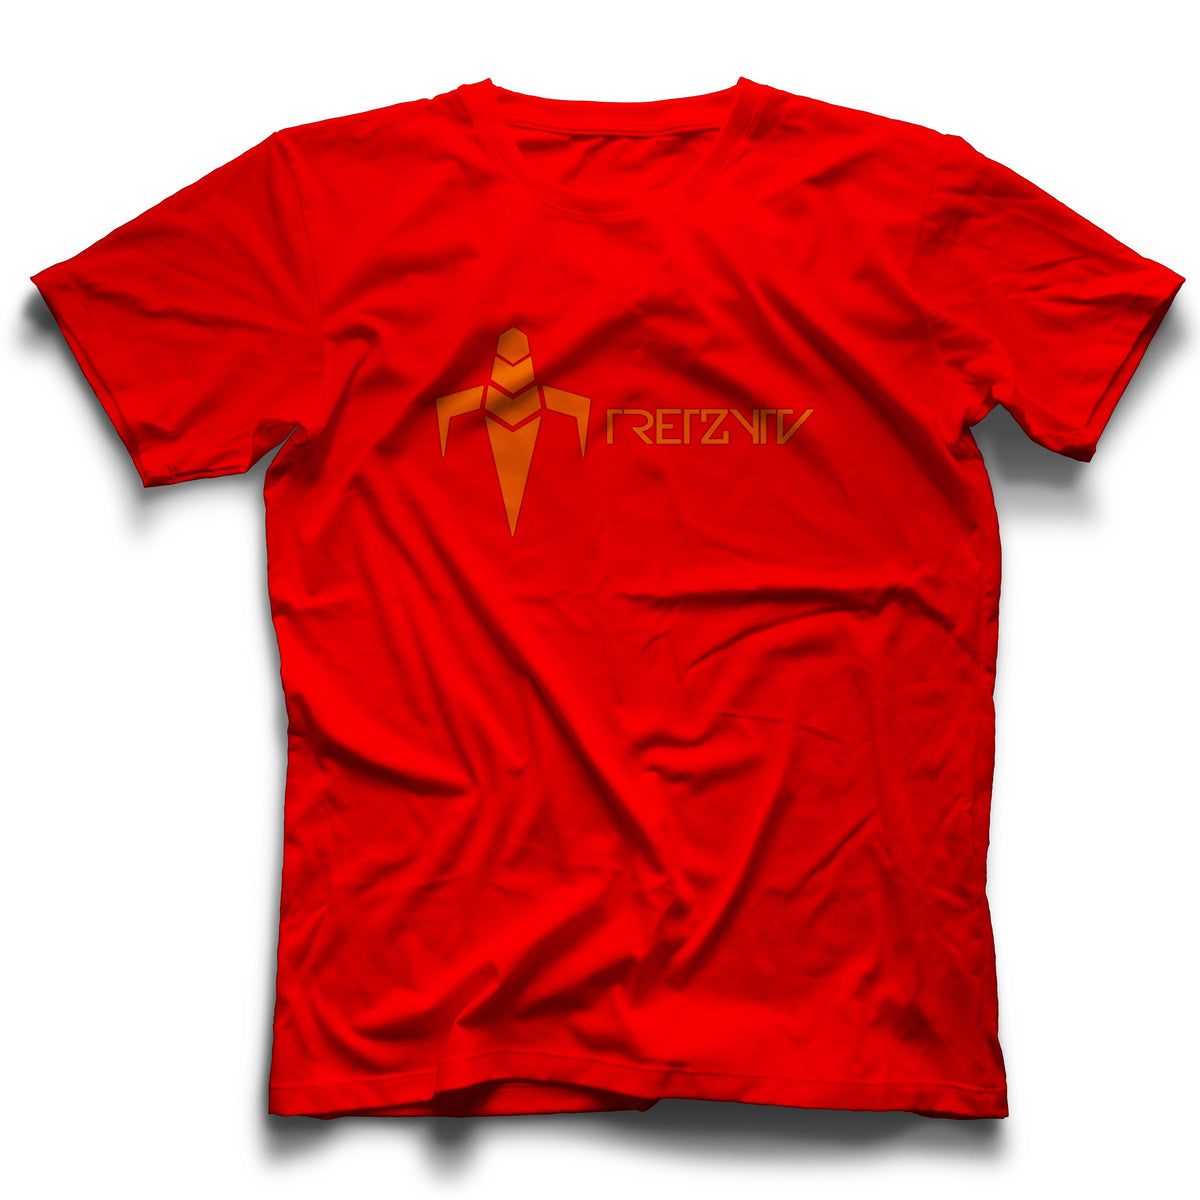 Simple Tretzy T shirt.